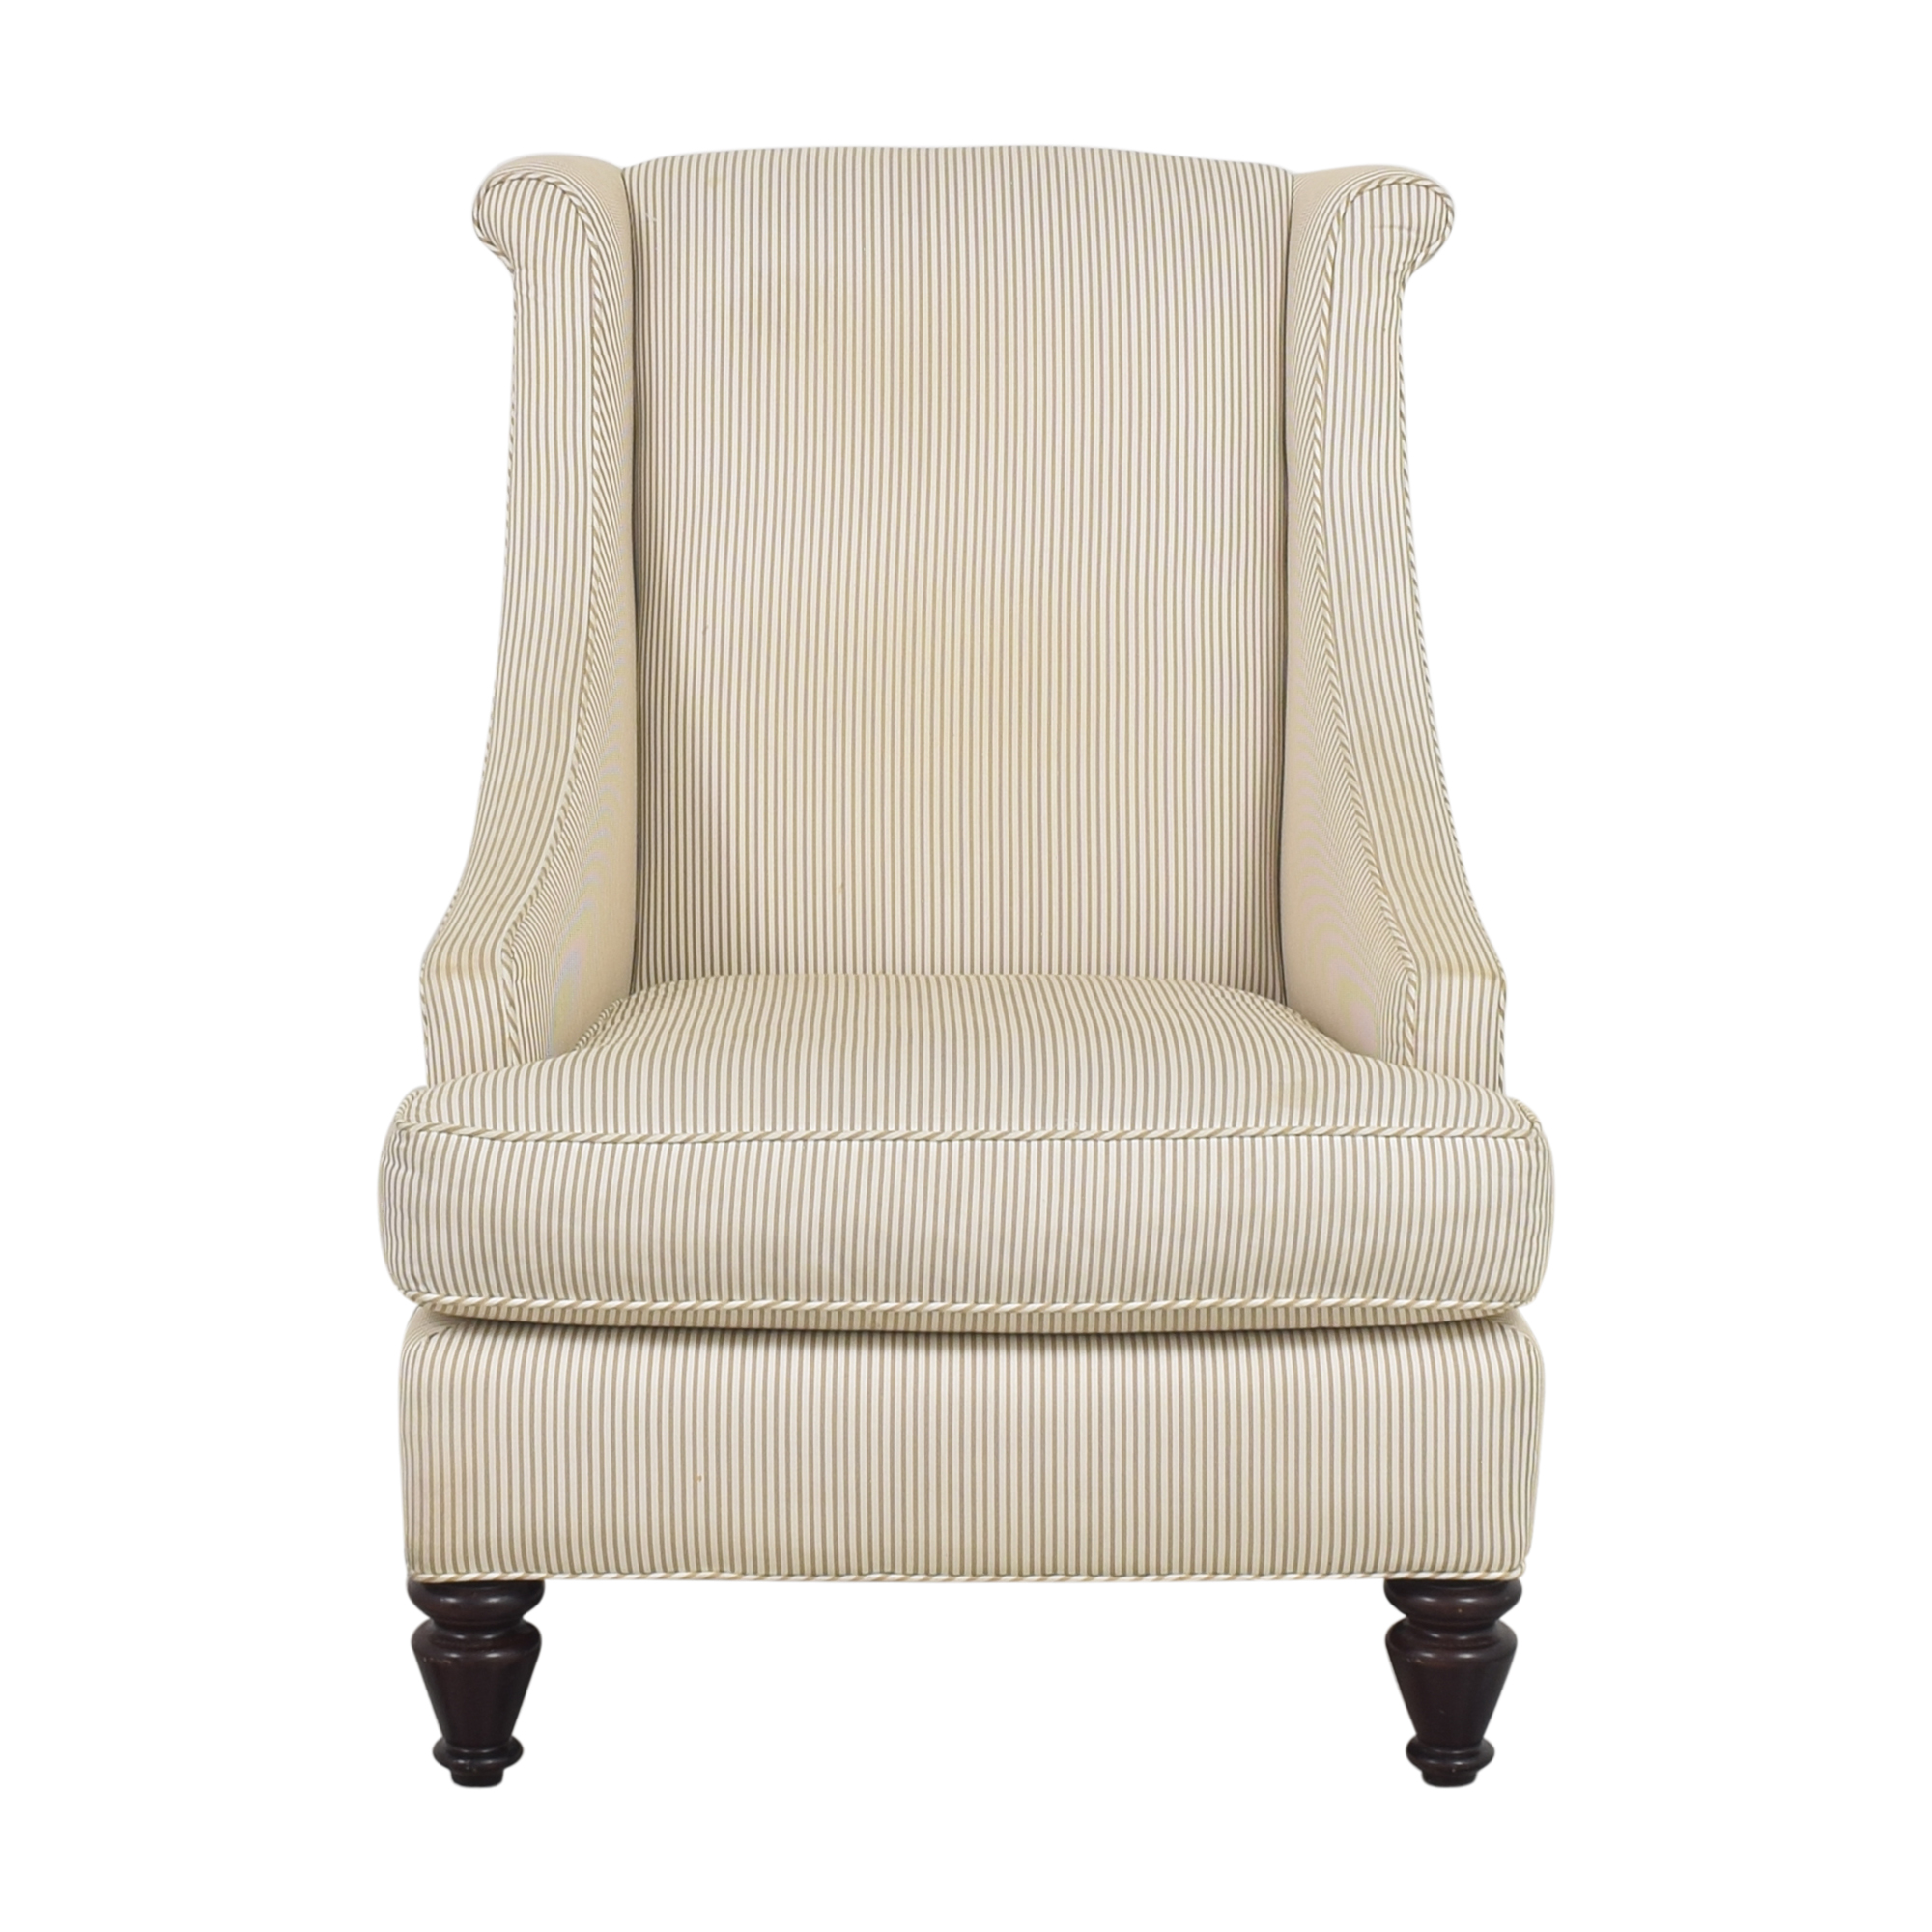 Mitchell Gold + Bob Williams Mitchell Gold + Bob Williams Stripe Accent Chair Accent Chairs